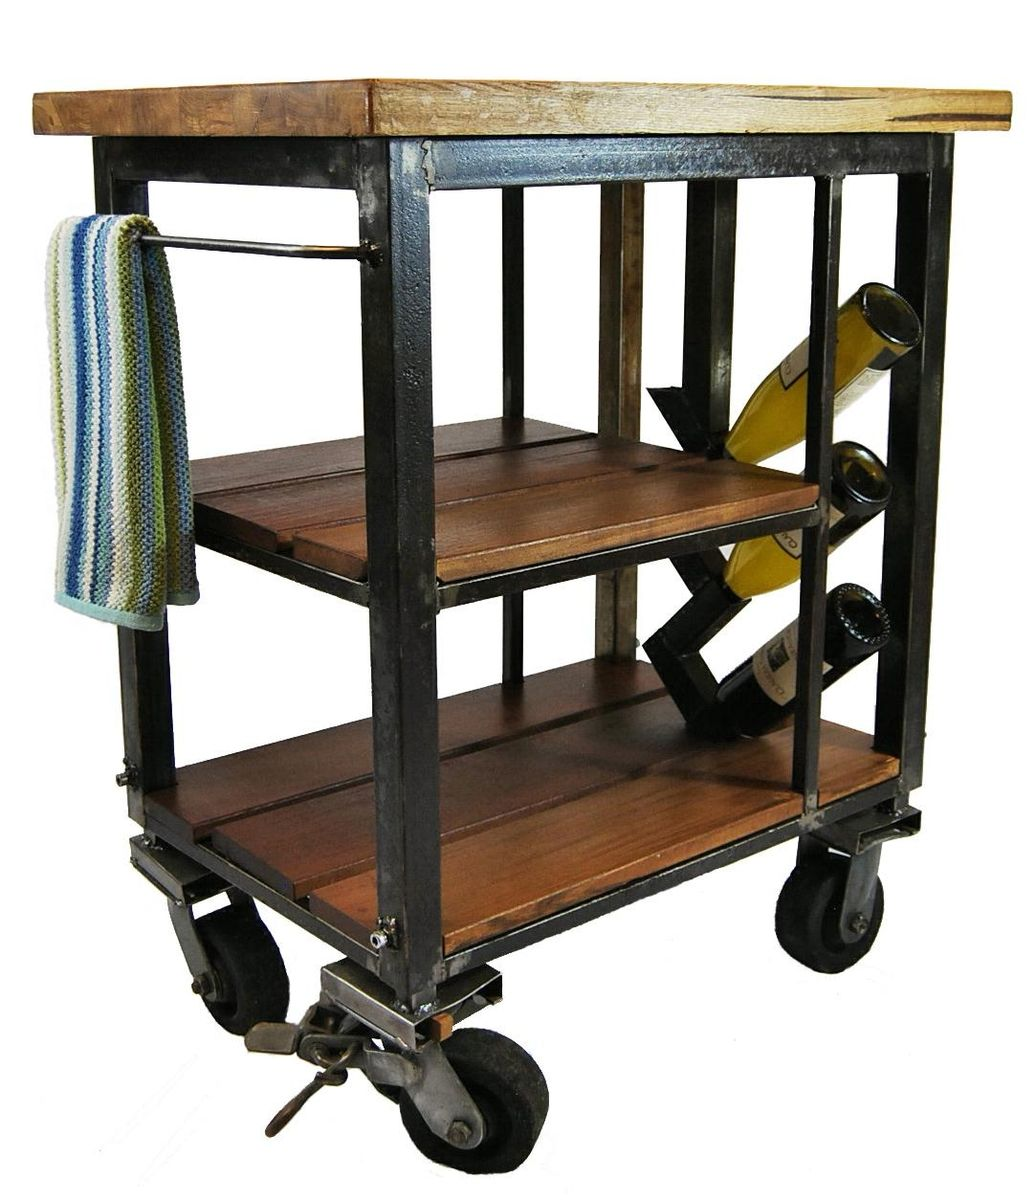 Napa Kitchen Cart Made From Reclaimed Butcher Block And Steel. Built With  Wheels And A